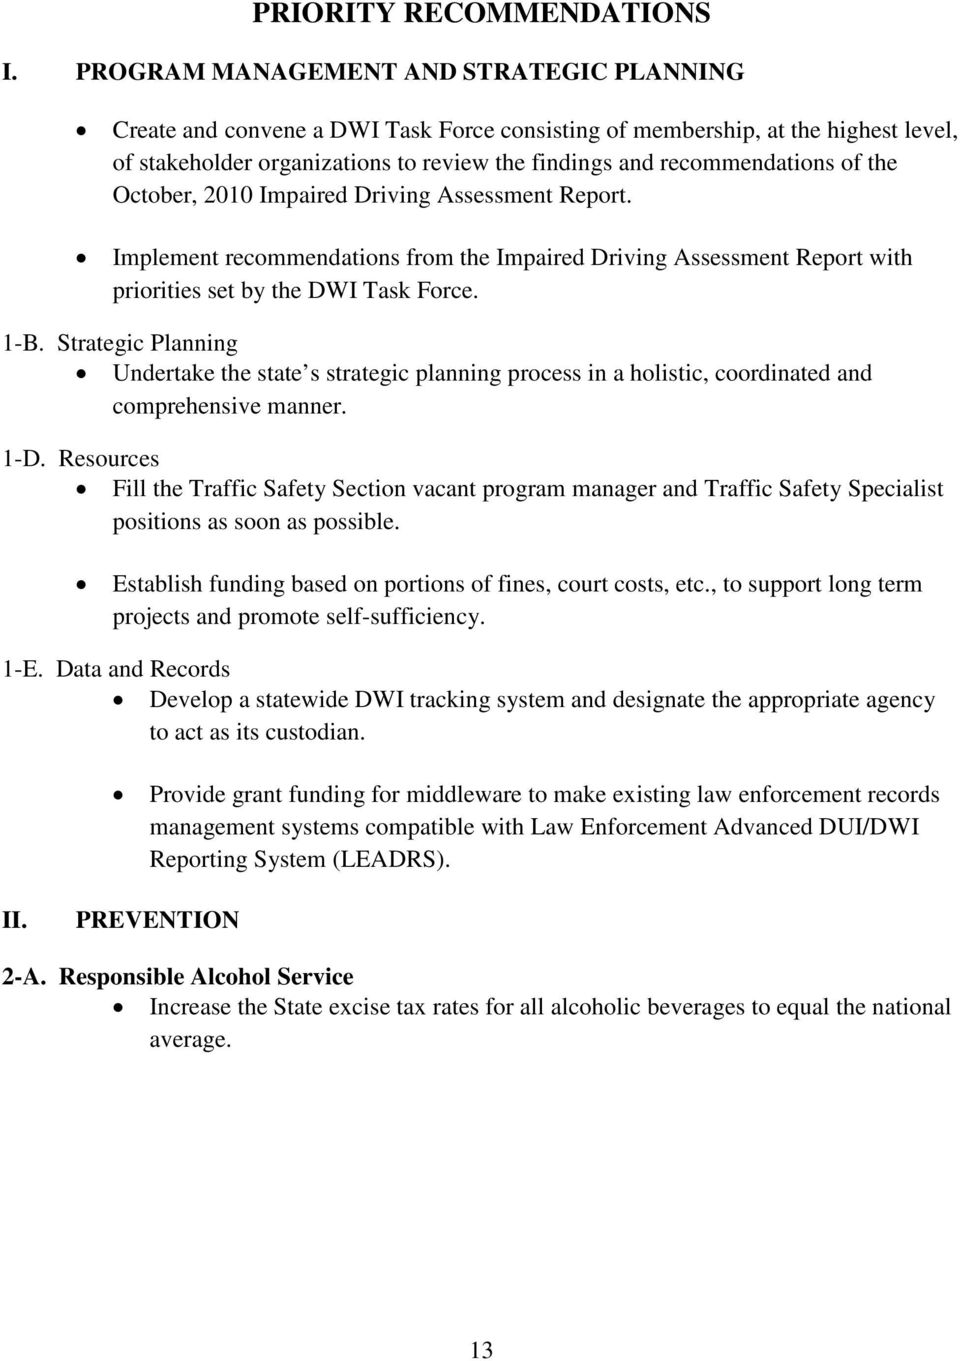 of the October, 2010 Impaired Driving Assessment Report. Implement recommendations from the Impaired Driving Assessment Report with priorities set by the DWI Task Force. 1-B.